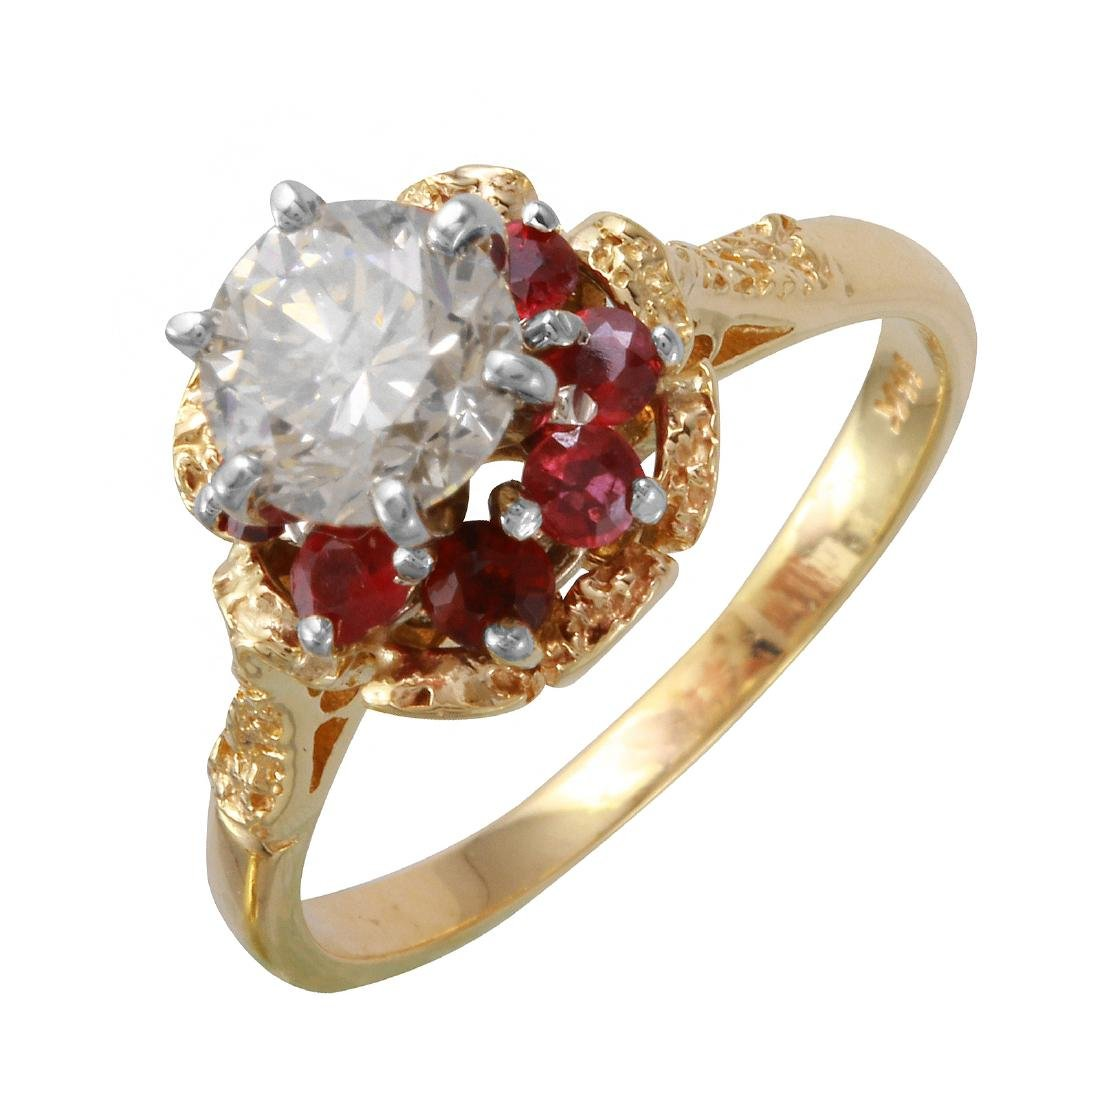 14KT Yellow Gold Diamond & Ruby Engagement Ring